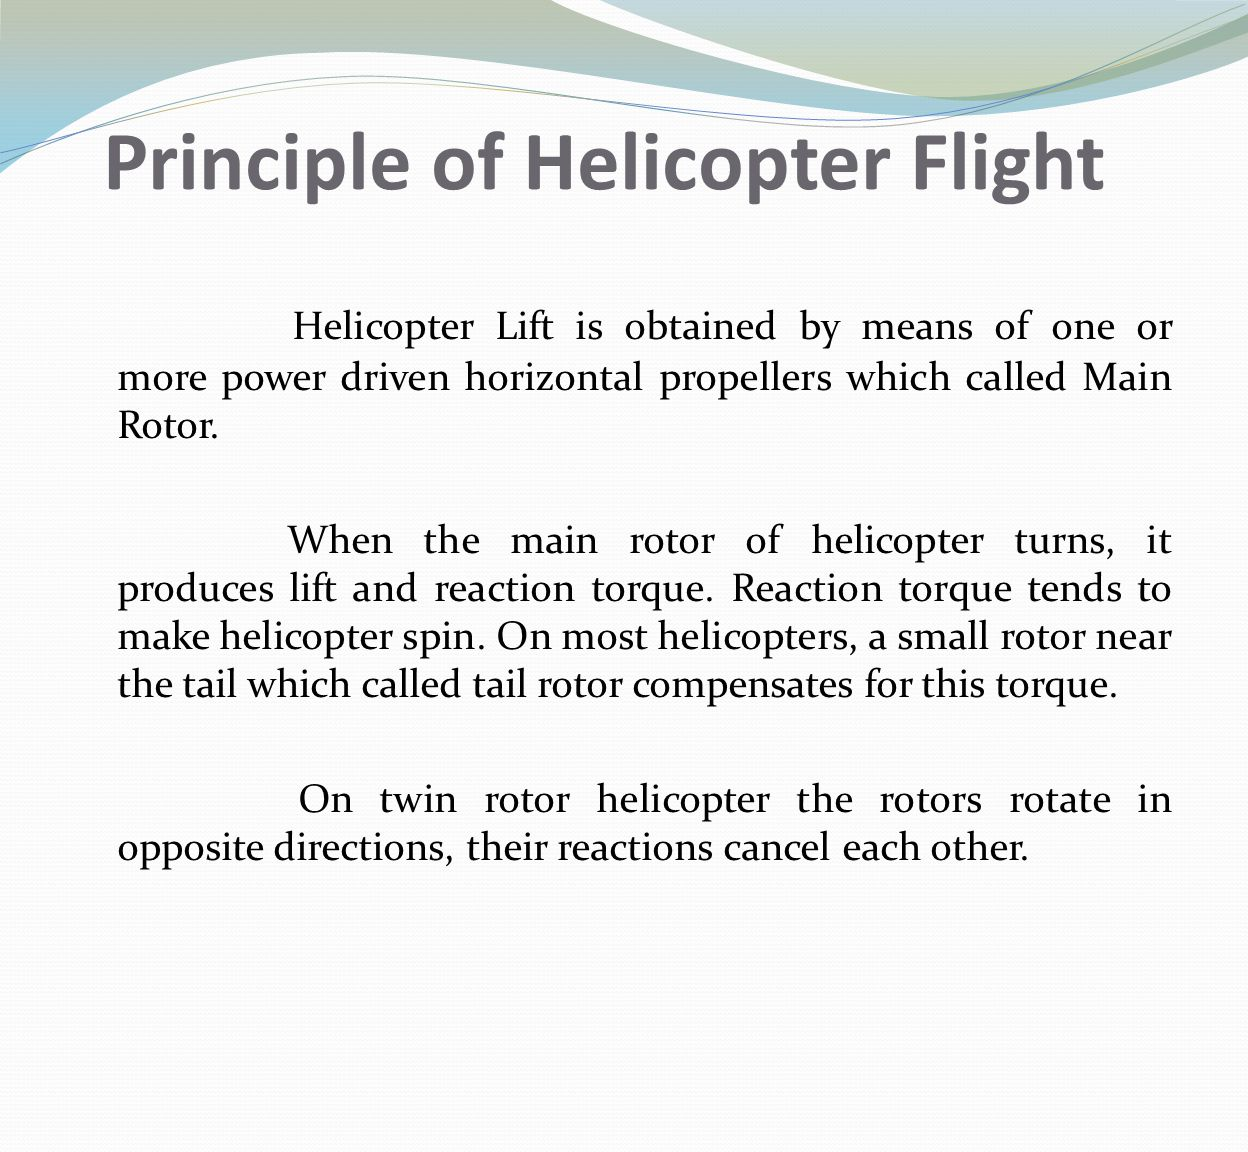 Principle of Helicopter Flight